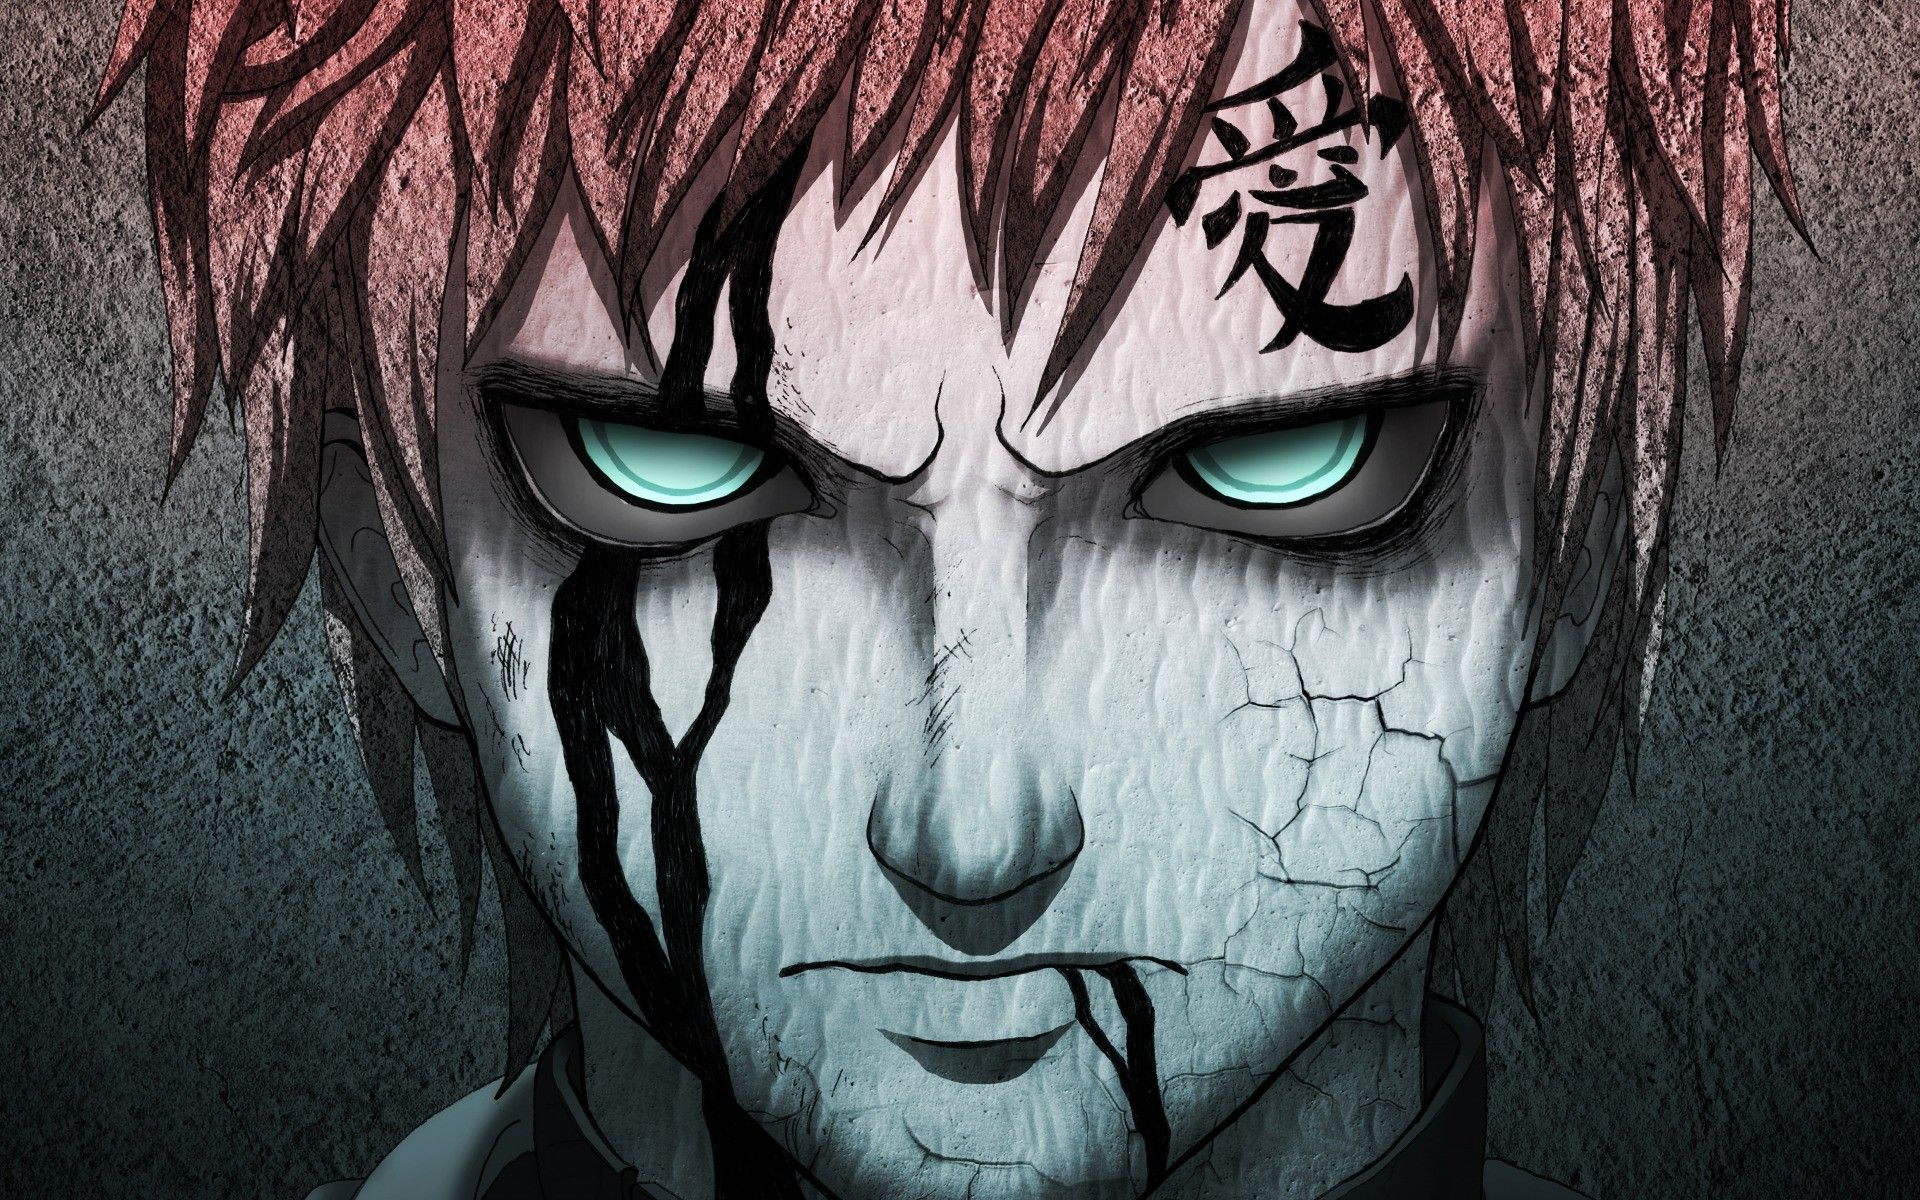 Dark anime boy original anime dark boy face eyes - Anime face wallpaper ...